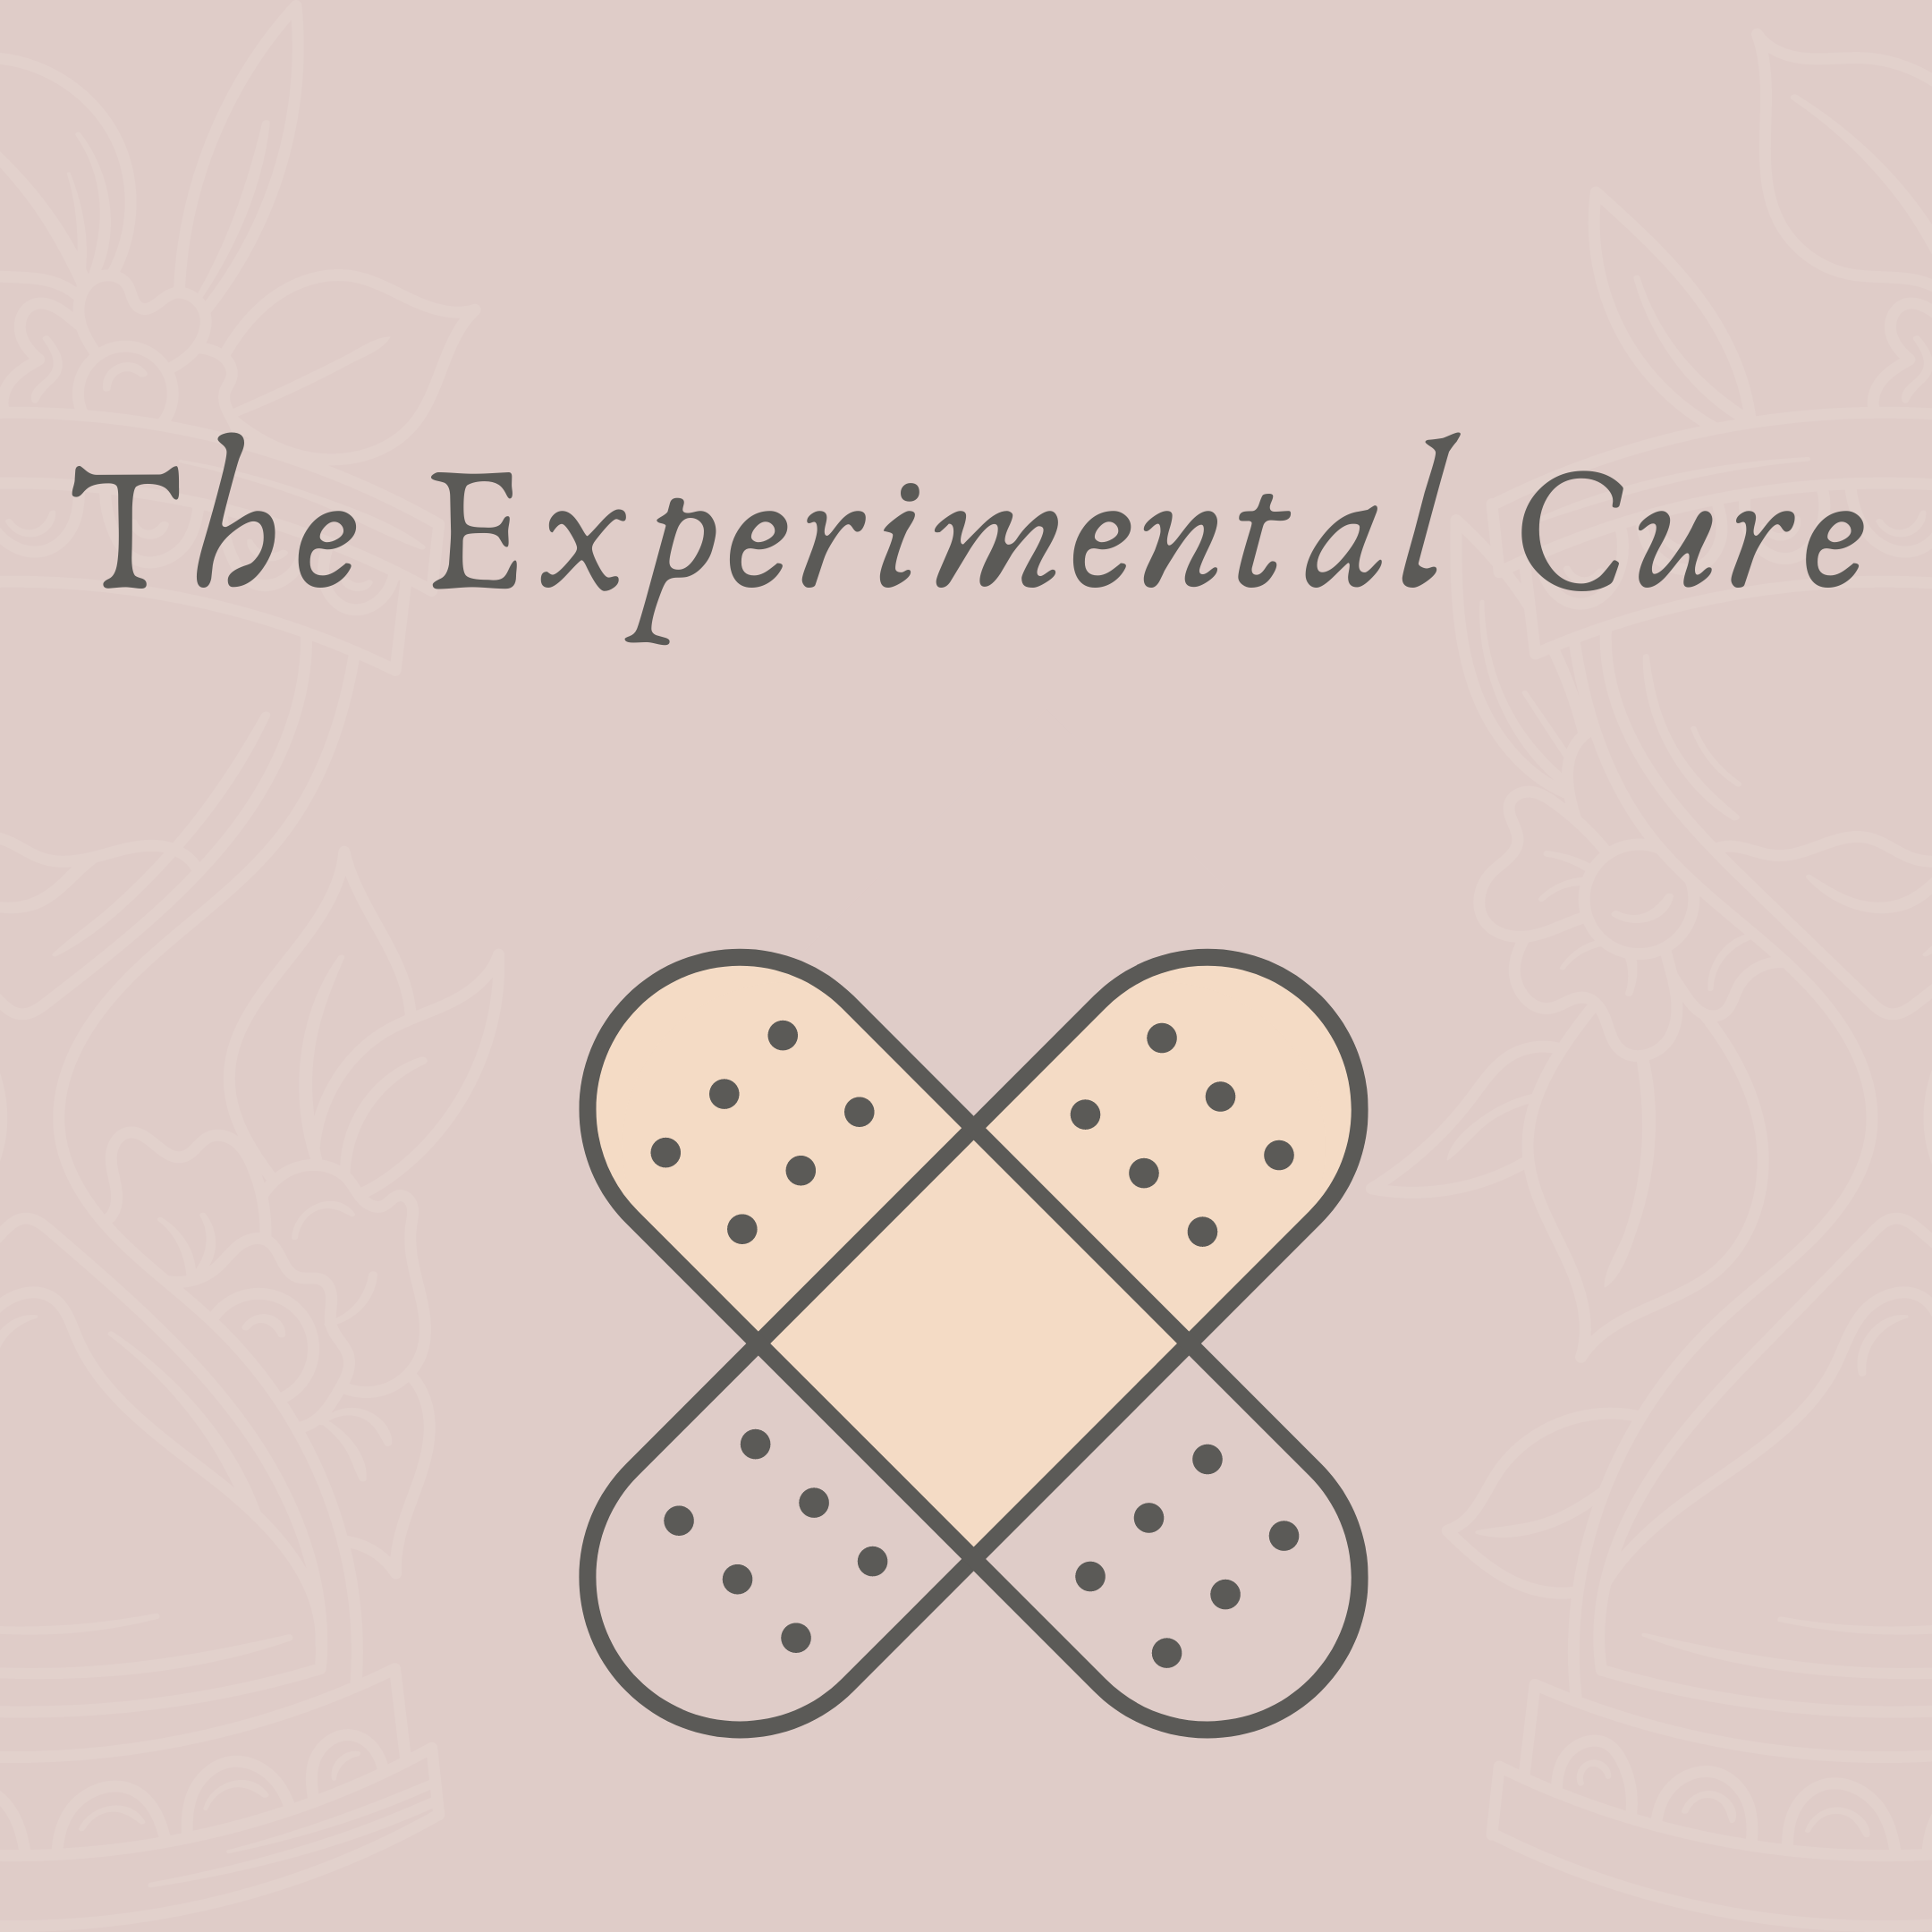 The Experimental Cure